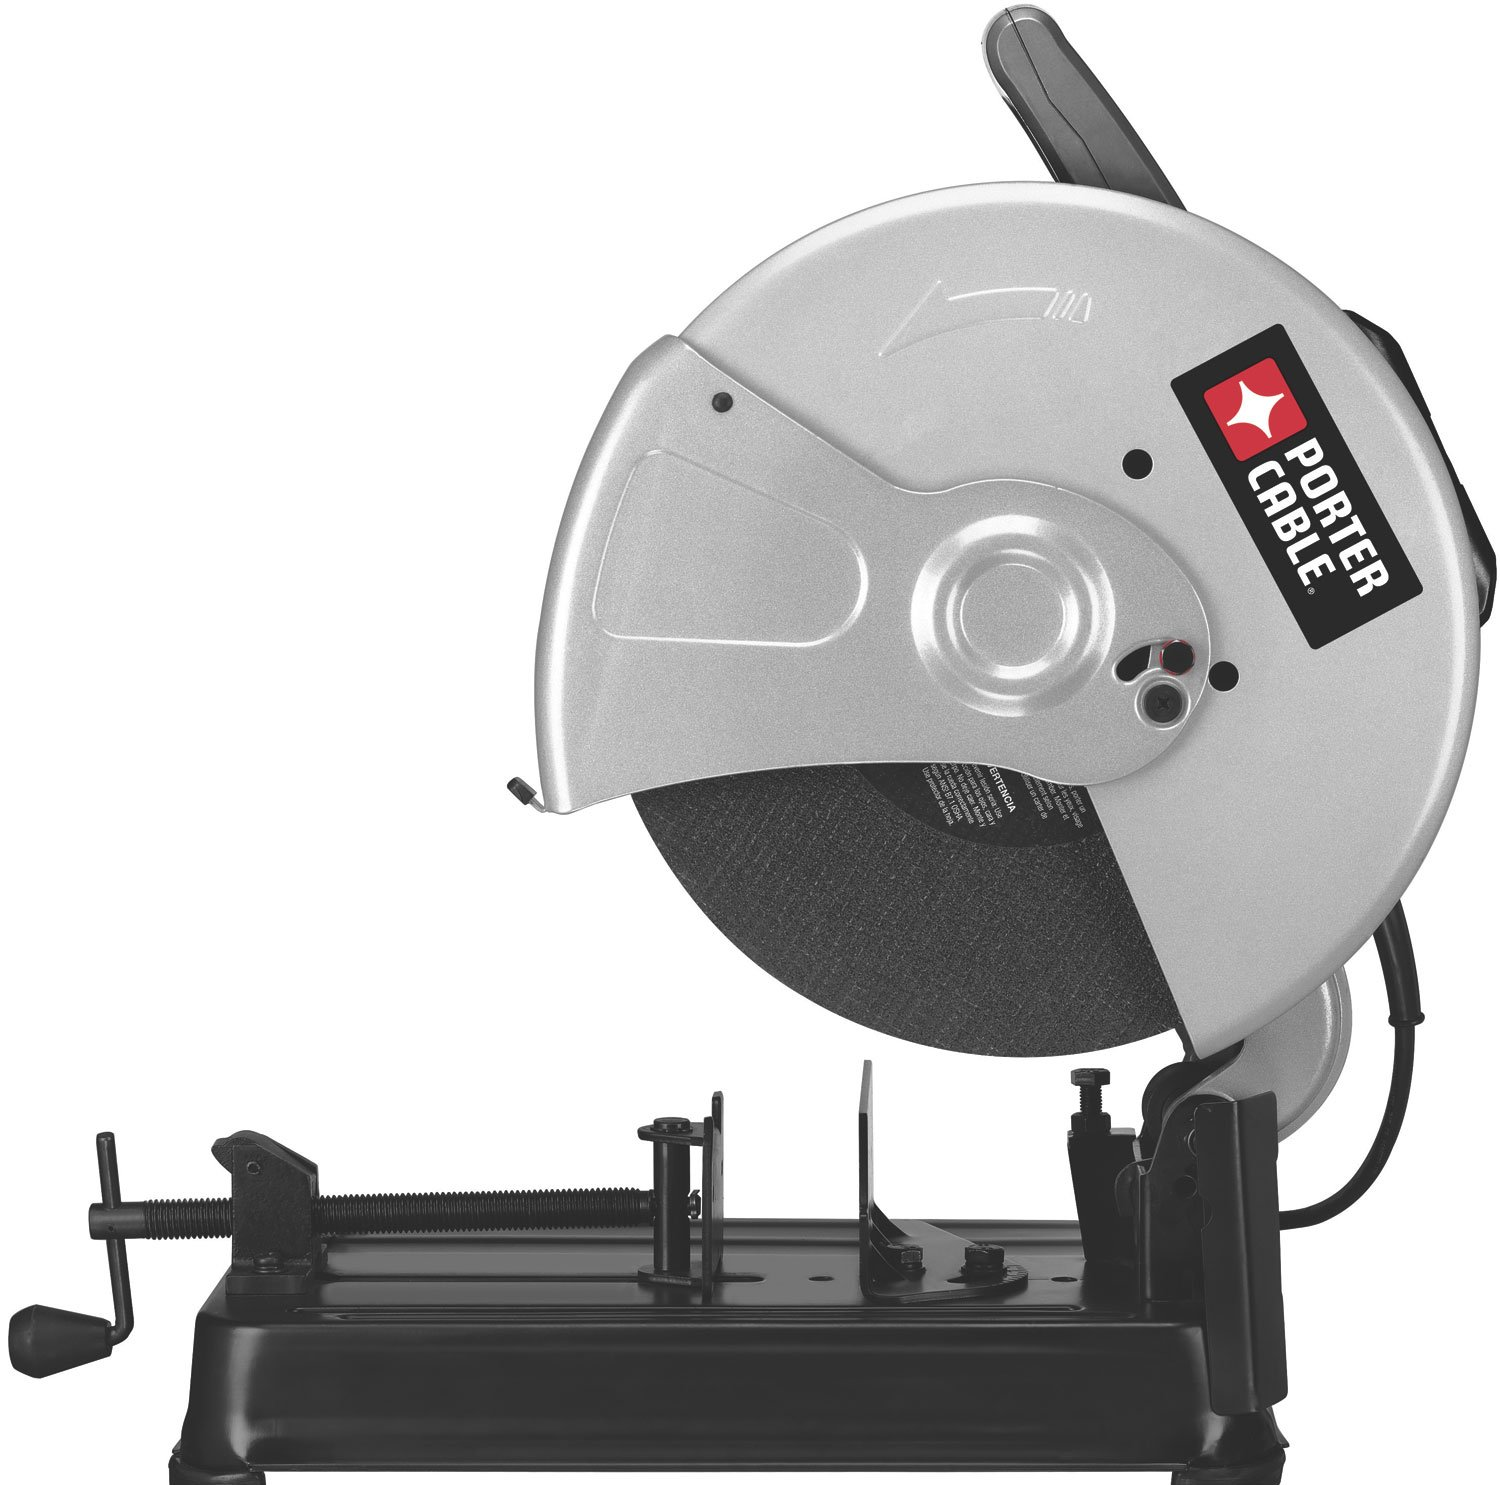 spindle tools dp bench amp sander grinder porter ca hand held improvement home oscillating cable amazon